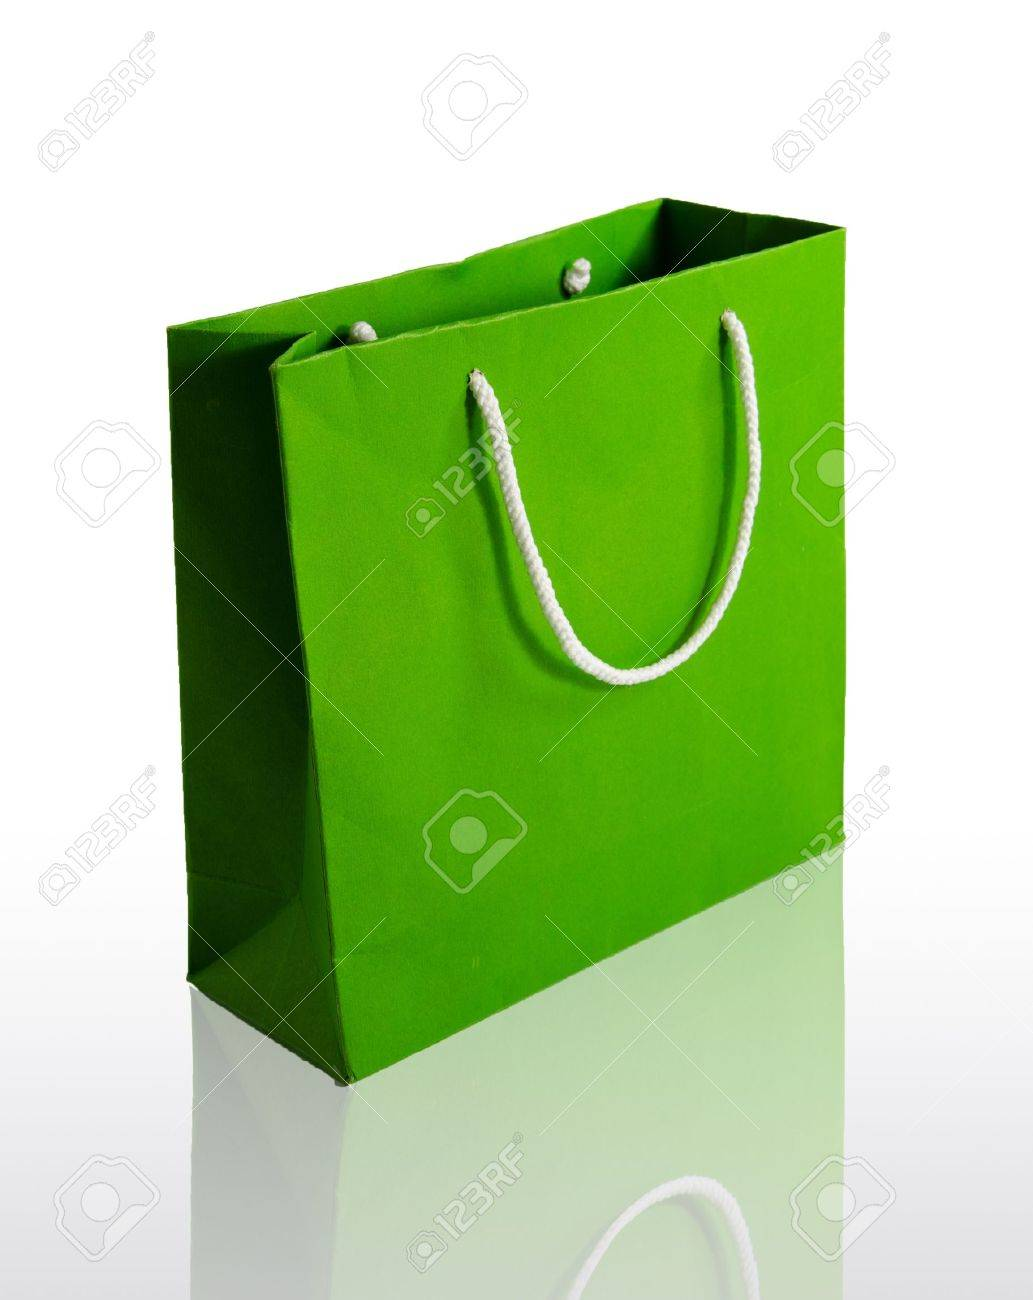 Green paper bag on reflect floor and white background - 11133177